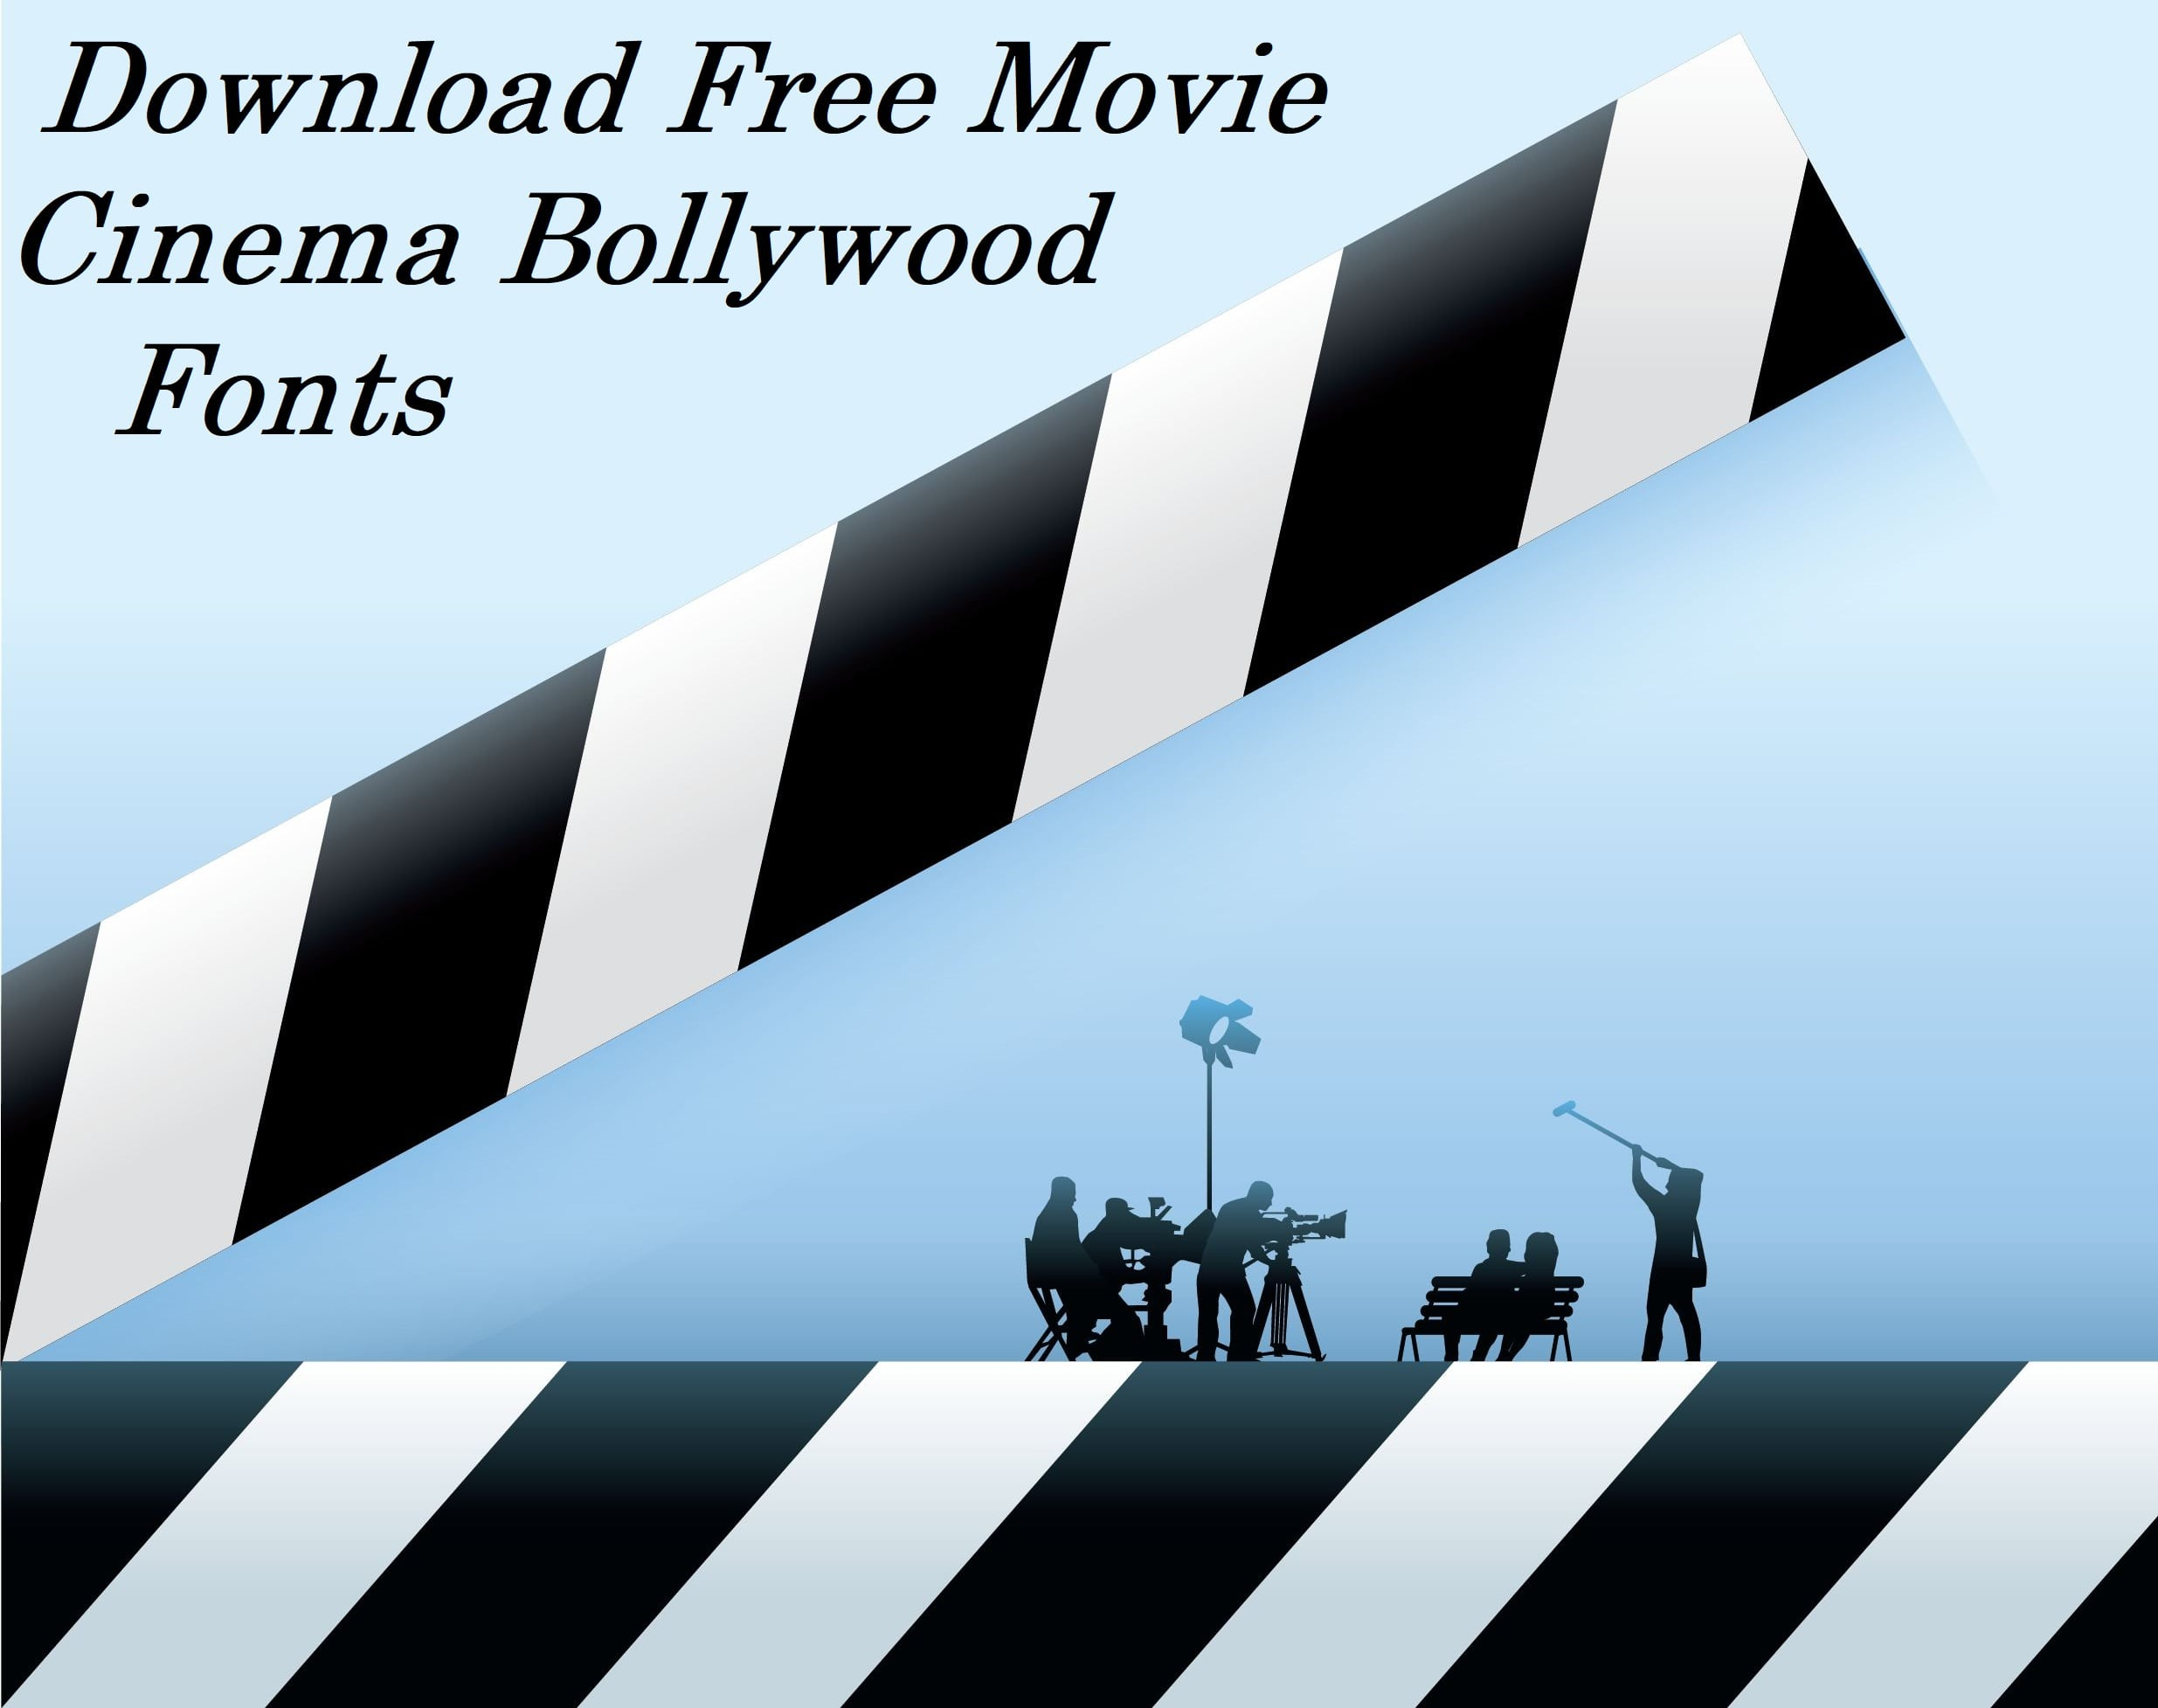 download free movie cinema bollywood fonts crazylearner